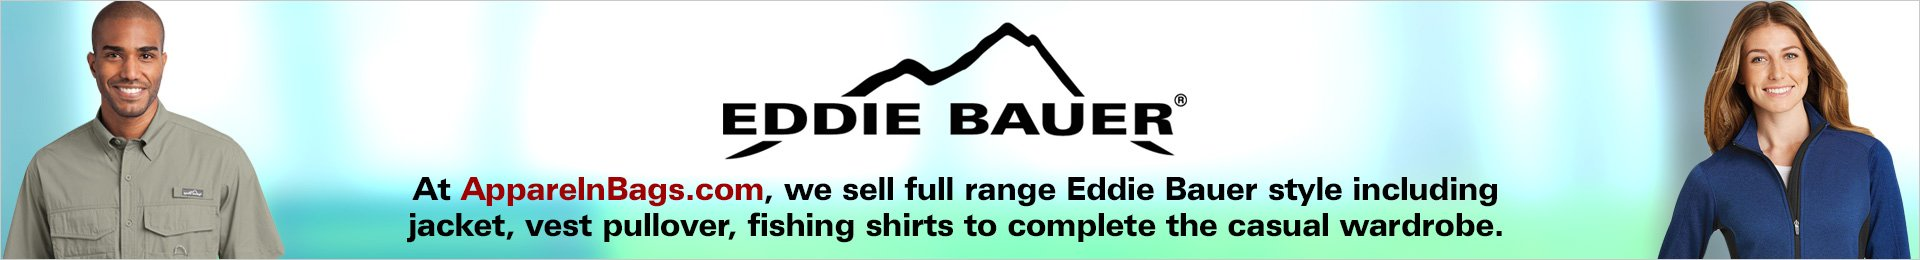 Custom Embroidered Eddie Bauer